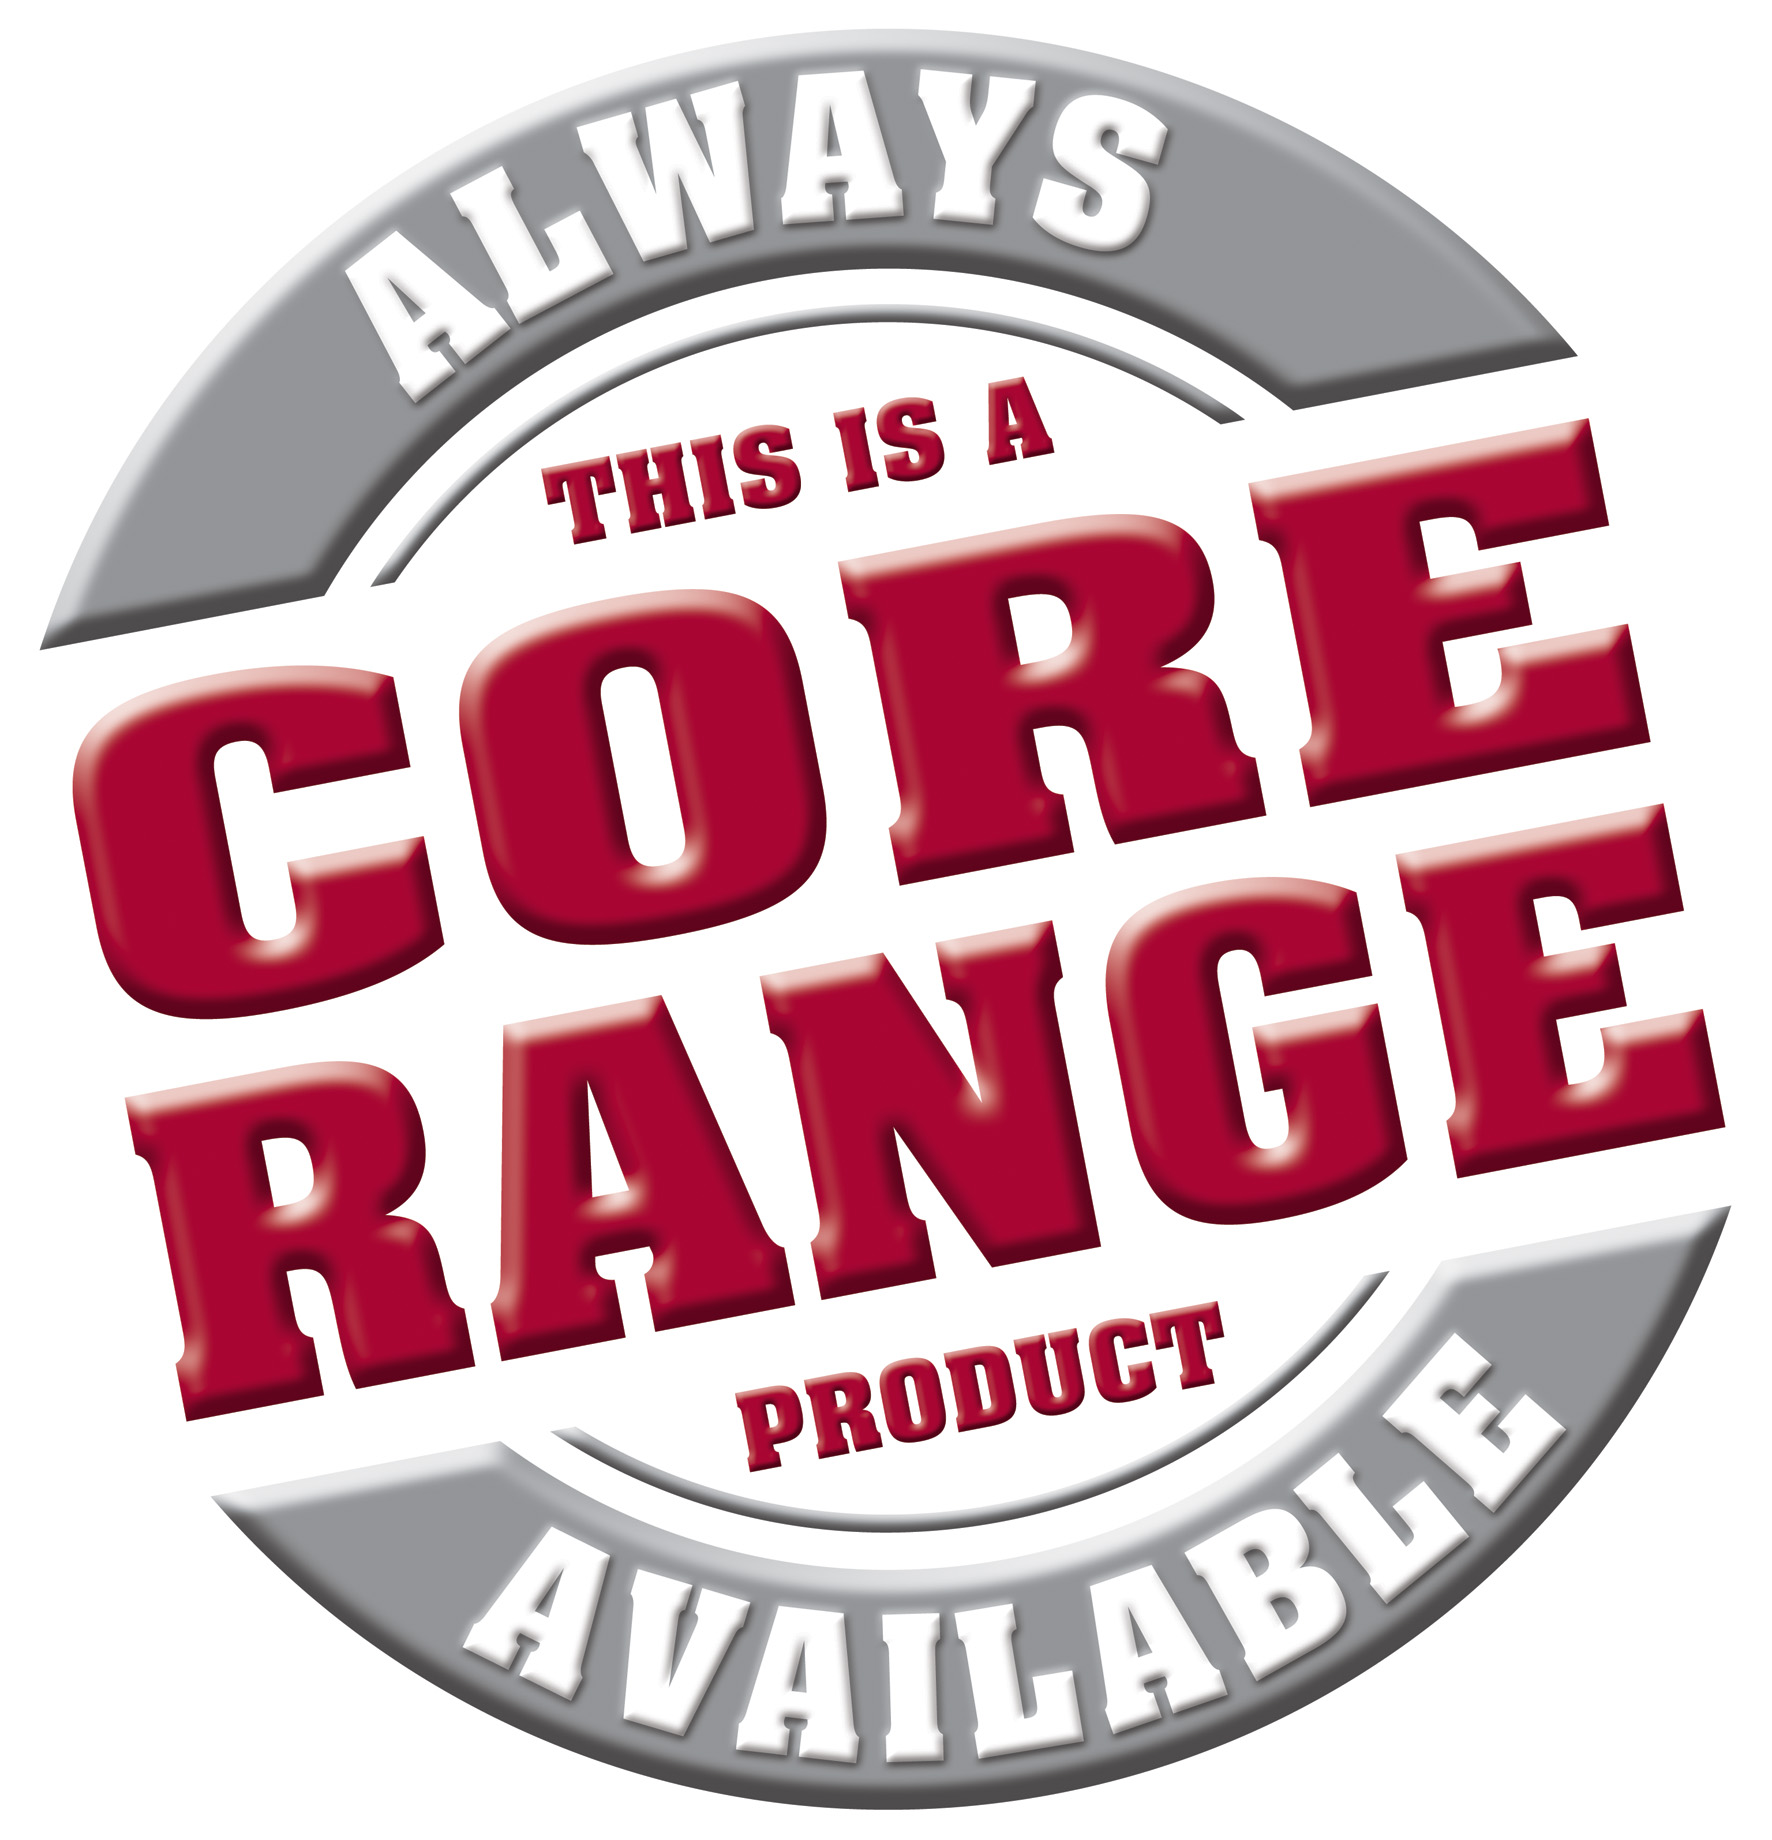 Sig Roofing S Core Range Initiative Rolled Out Nationwide